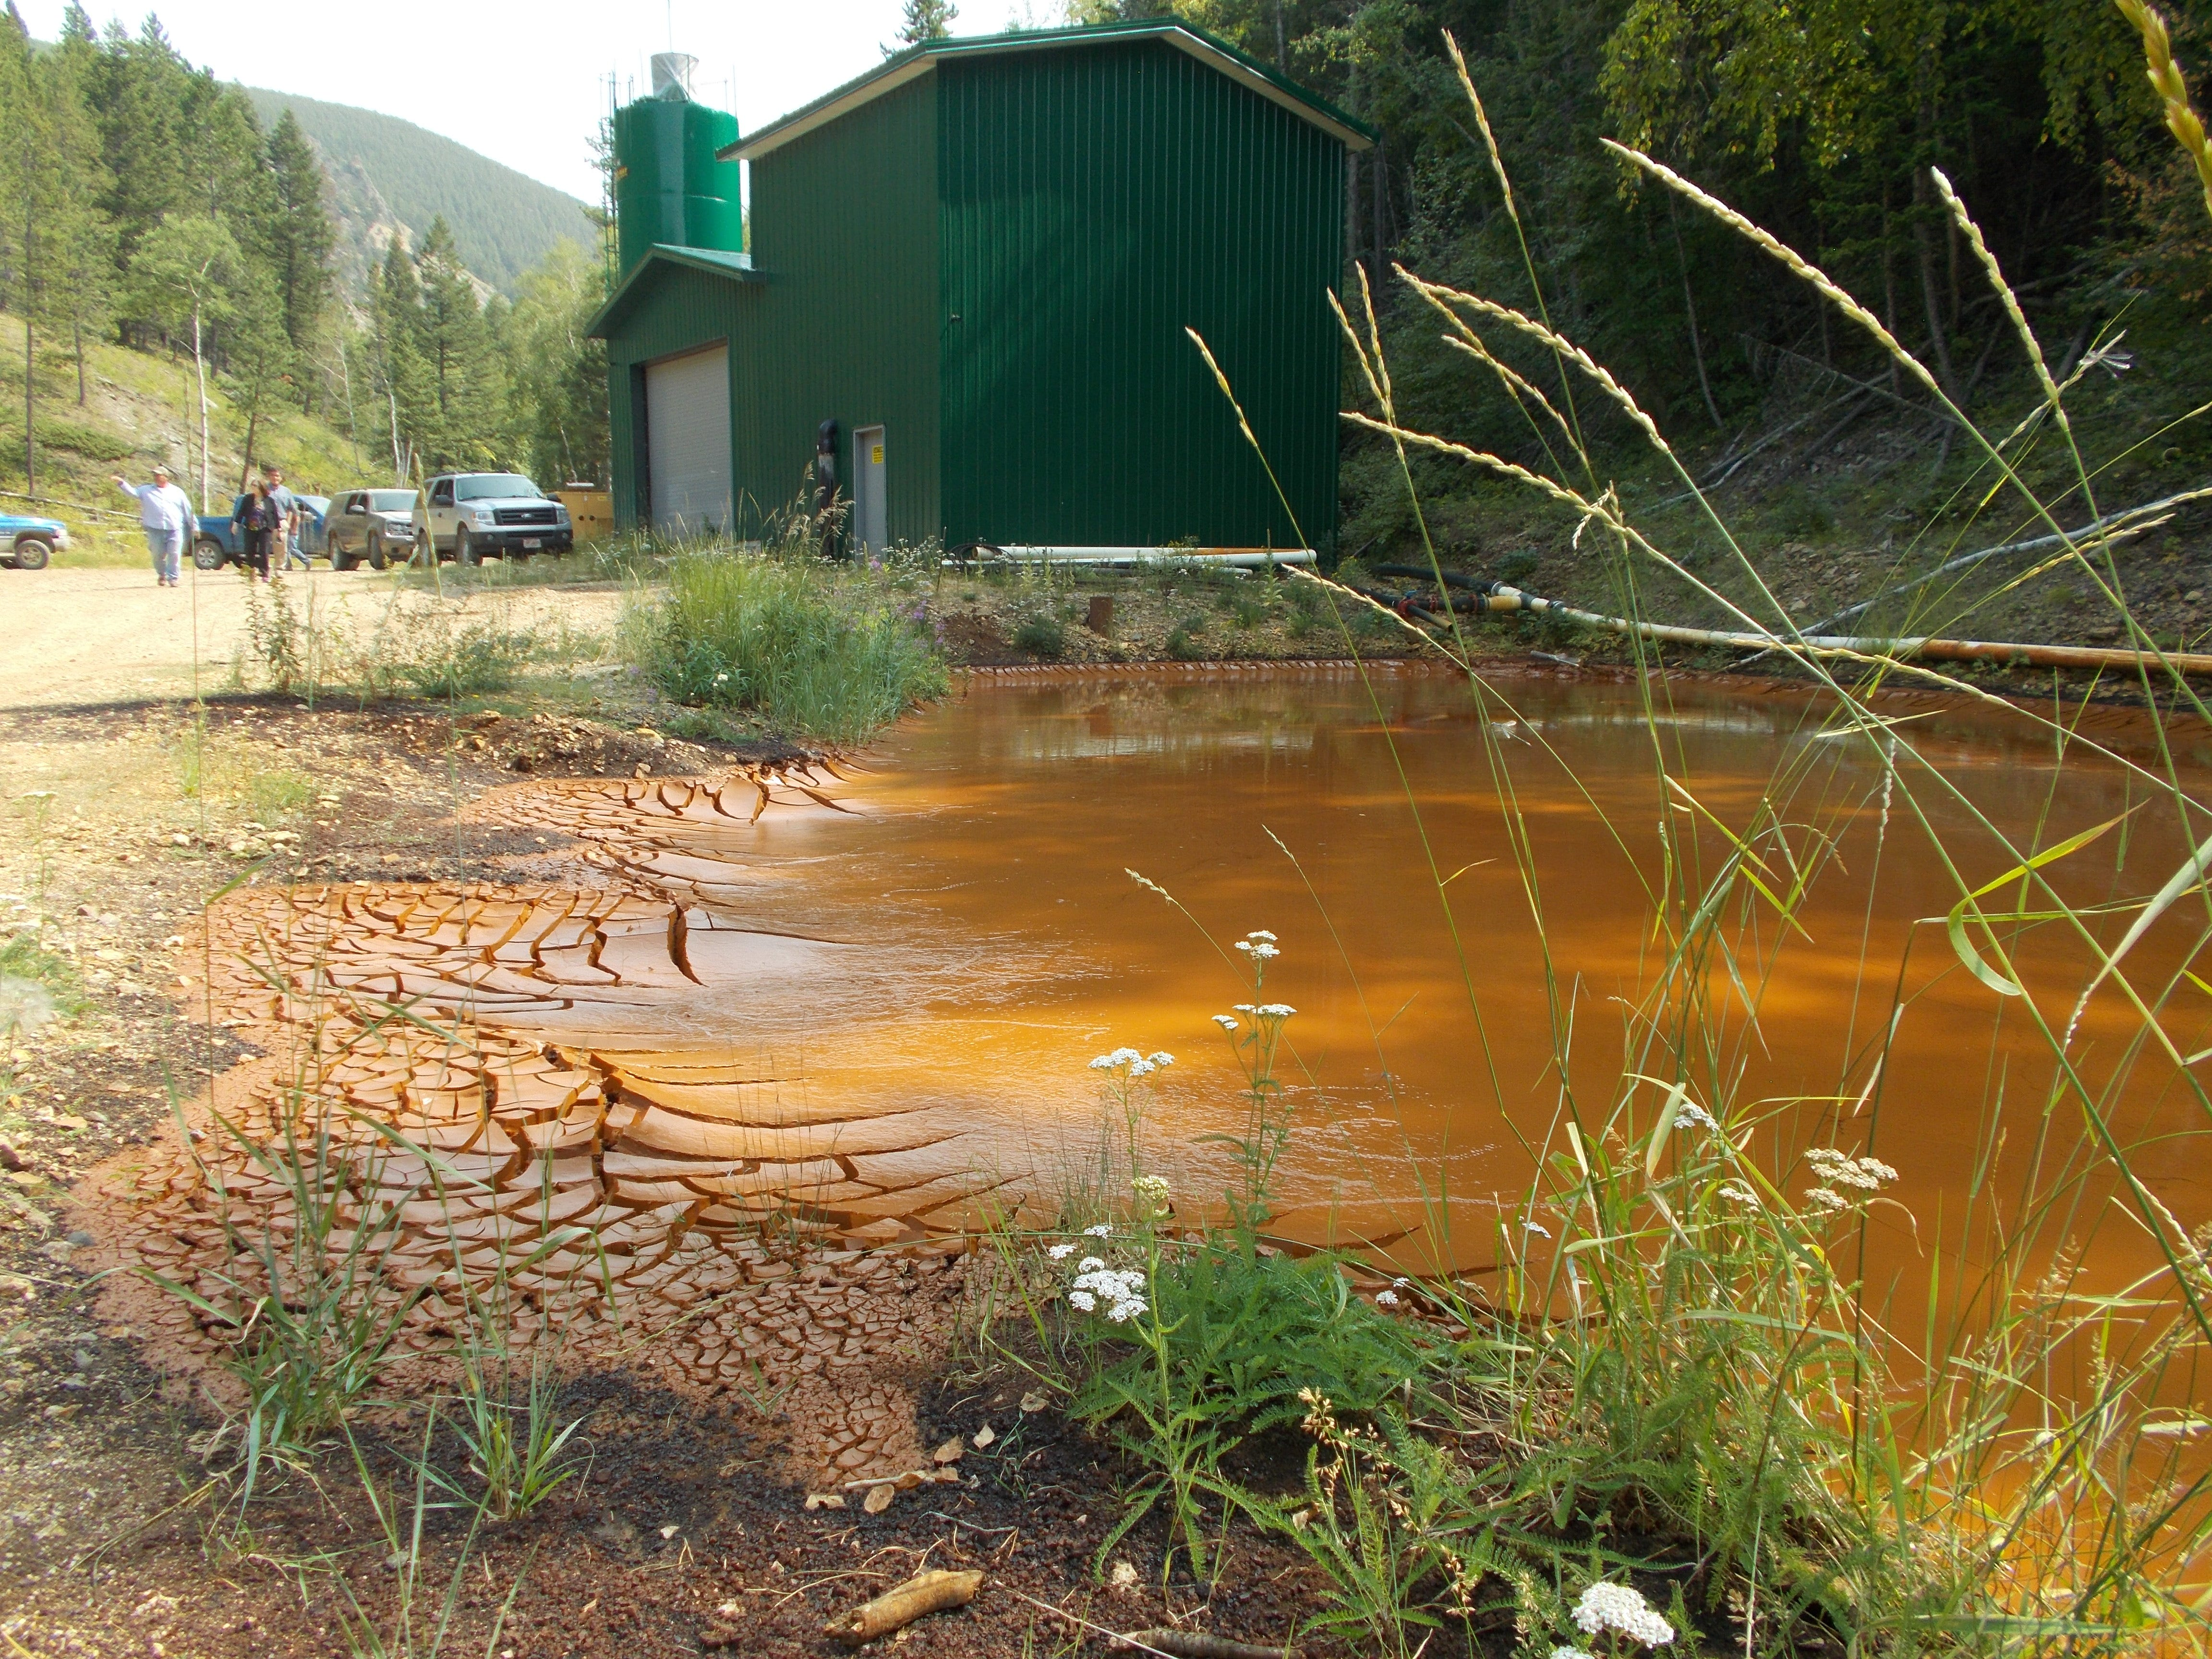 The Swift Gulch Water Treatment Plant, located in the Little Rocky Mountains, treats acid rock drainage from the Landusky mine.